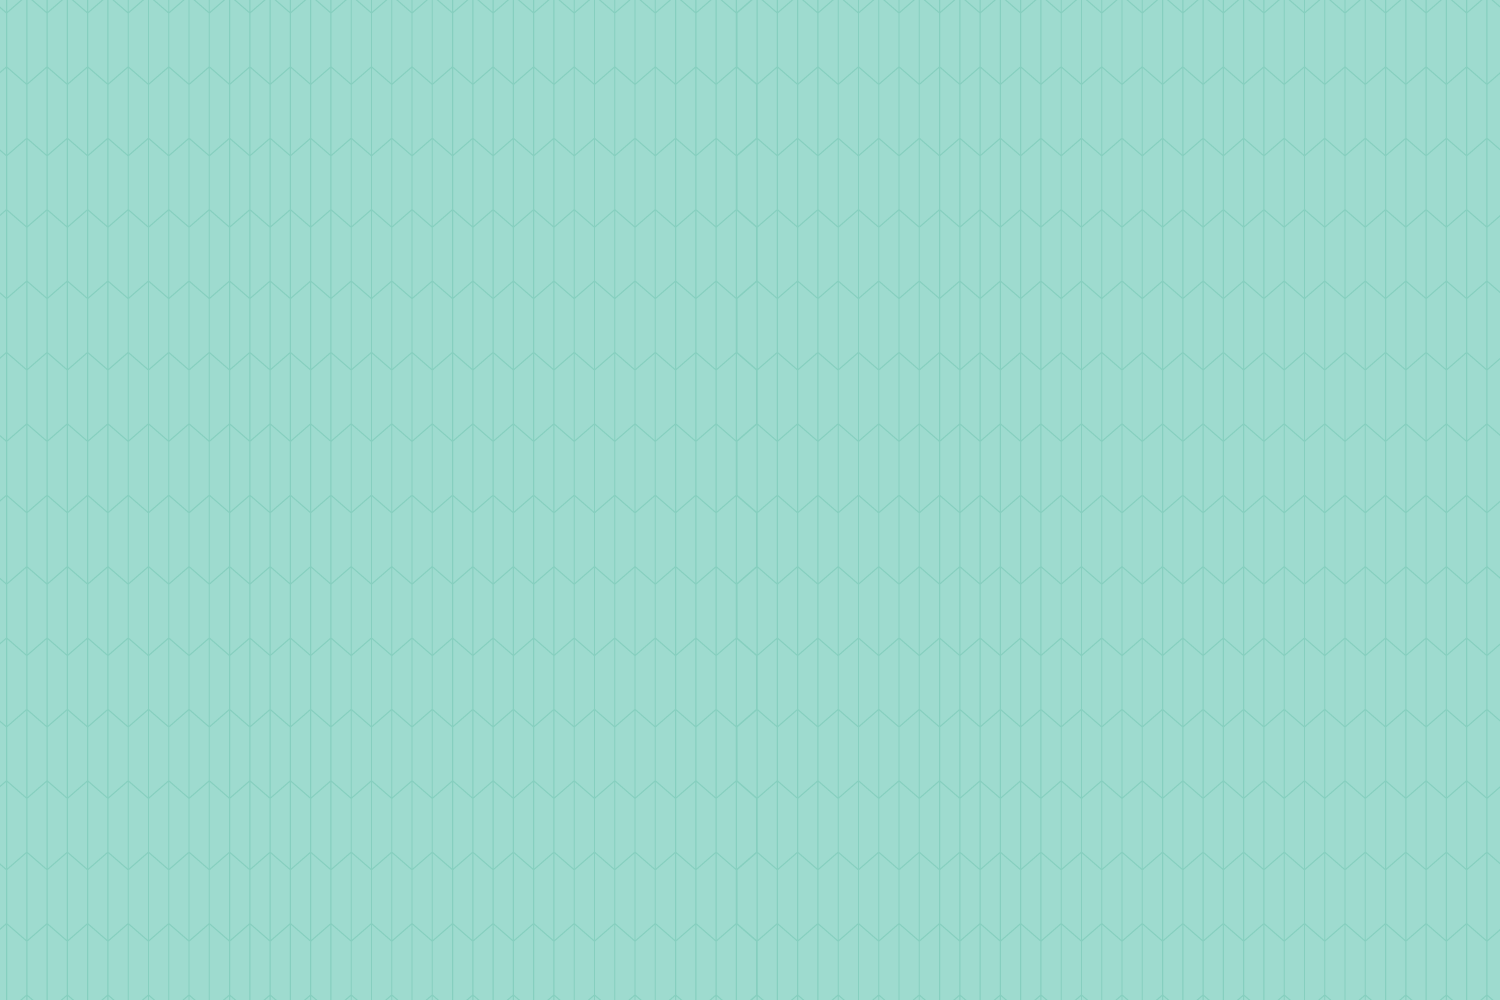 teal_background.png